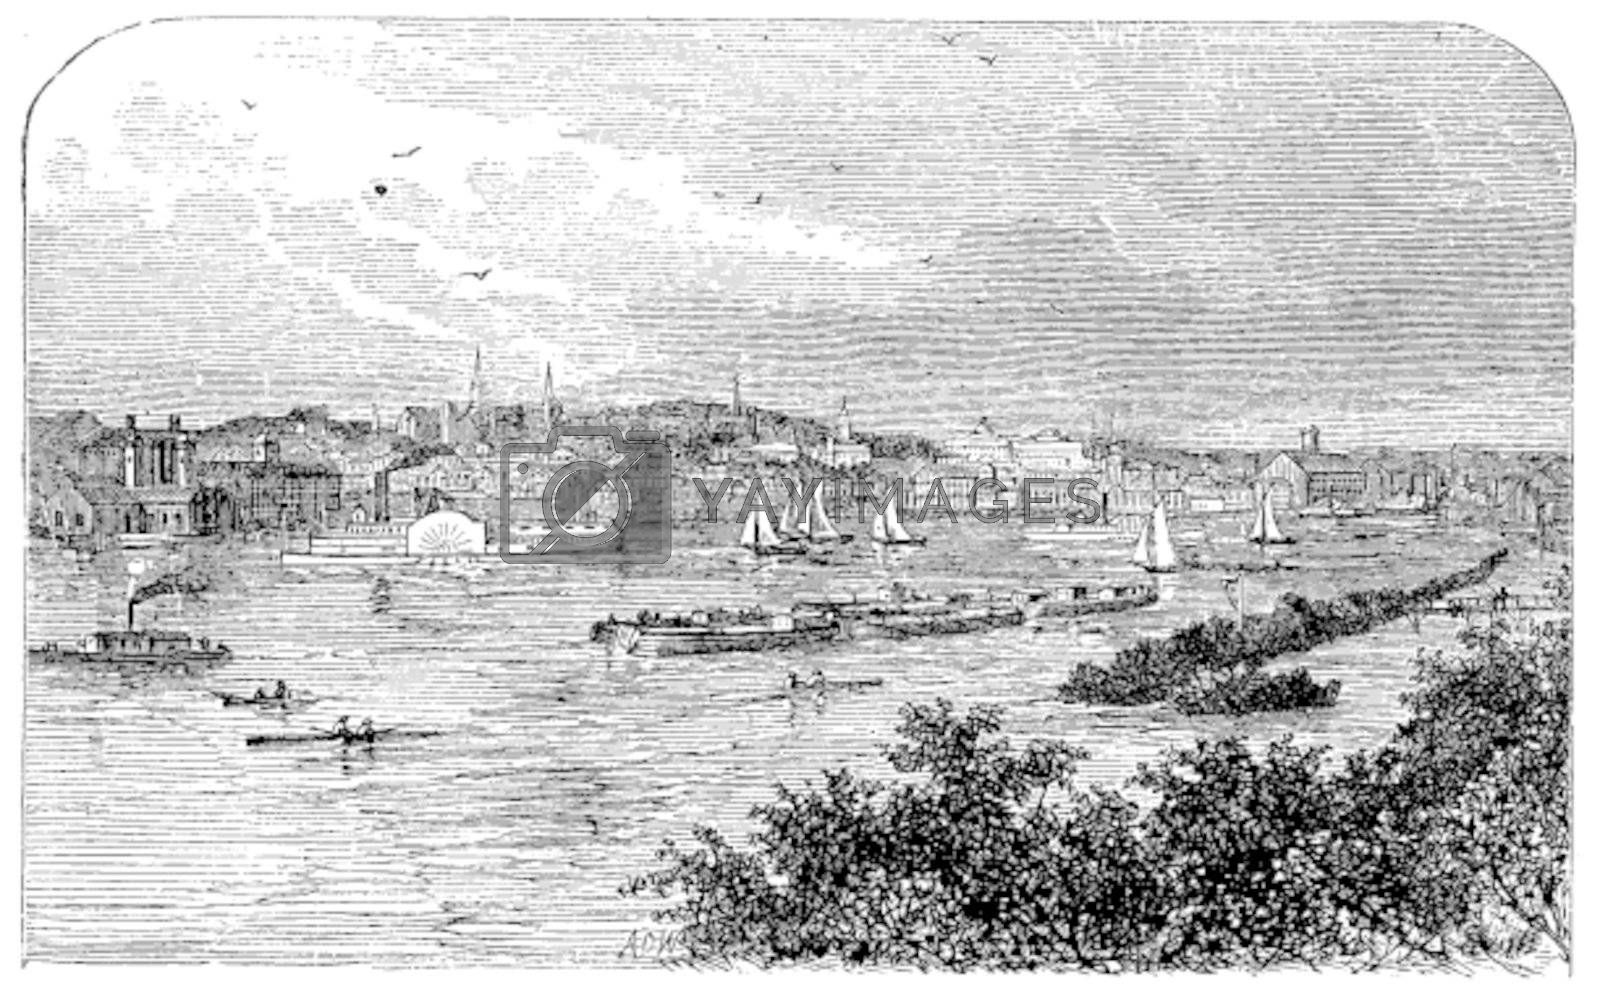 Albany, New York, in 1890. Capital city of New York state. Engraving. Vintage engraved illustration of the famous capital. Lively scenic engraving of the bay.